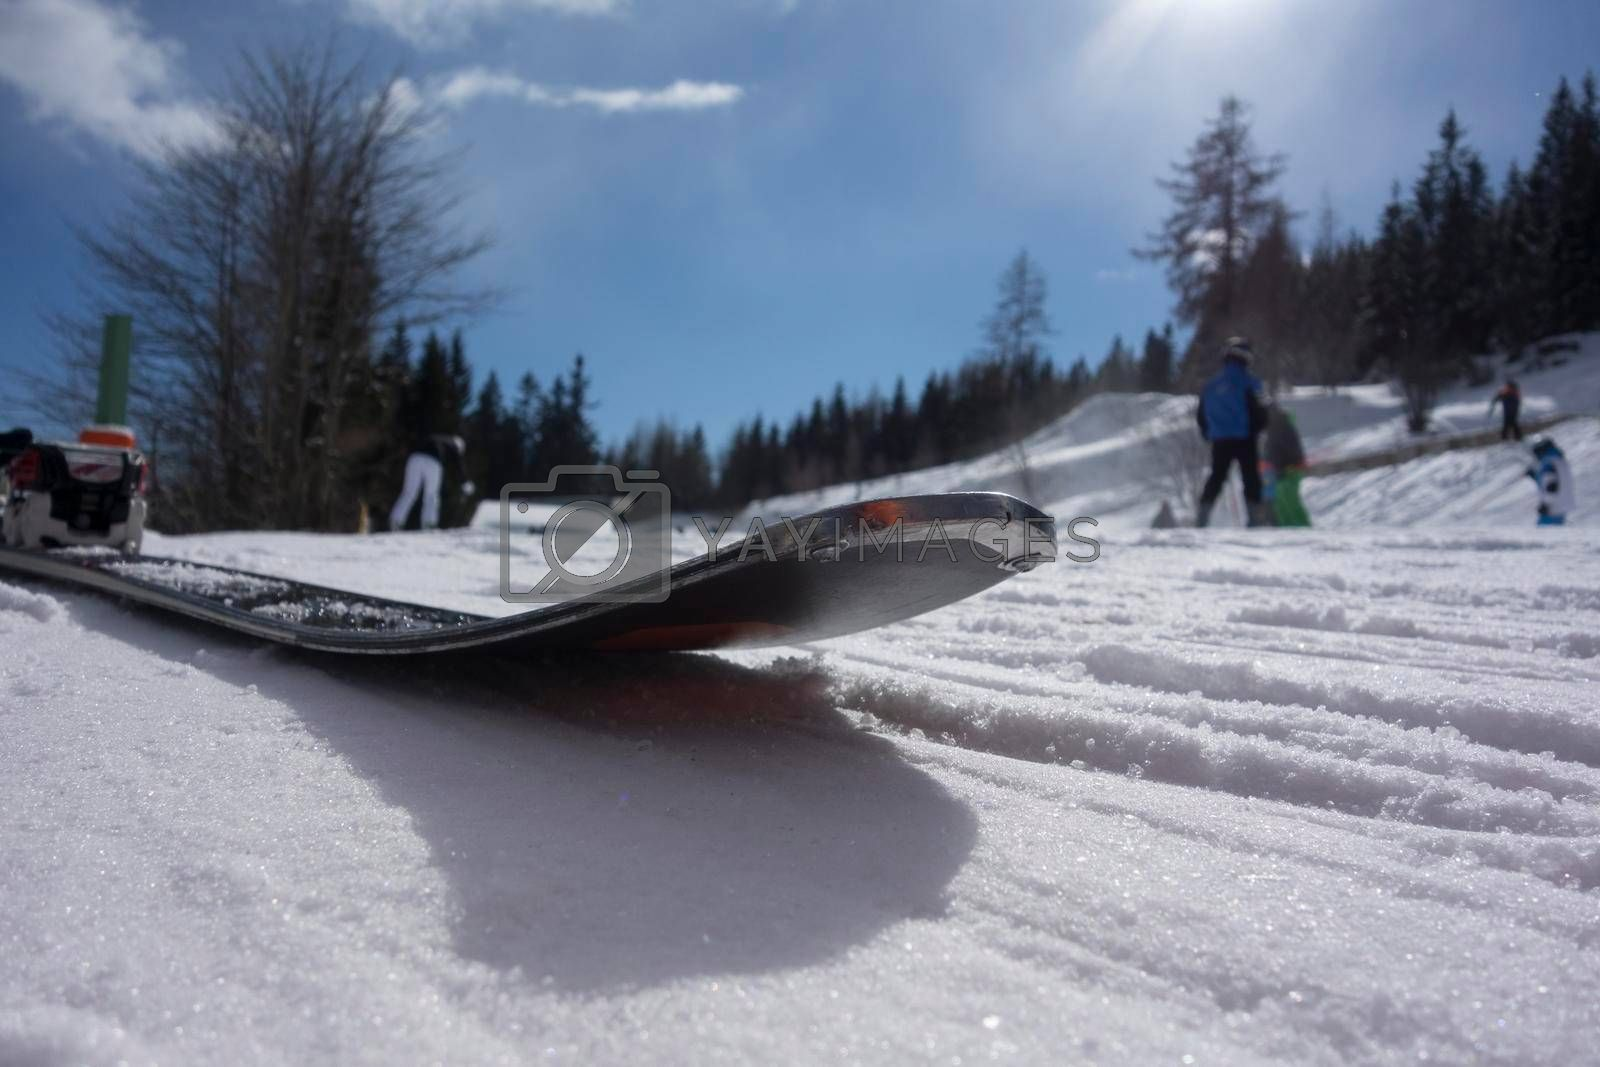 ski in winter, outdoor sports in the snow of the mountains